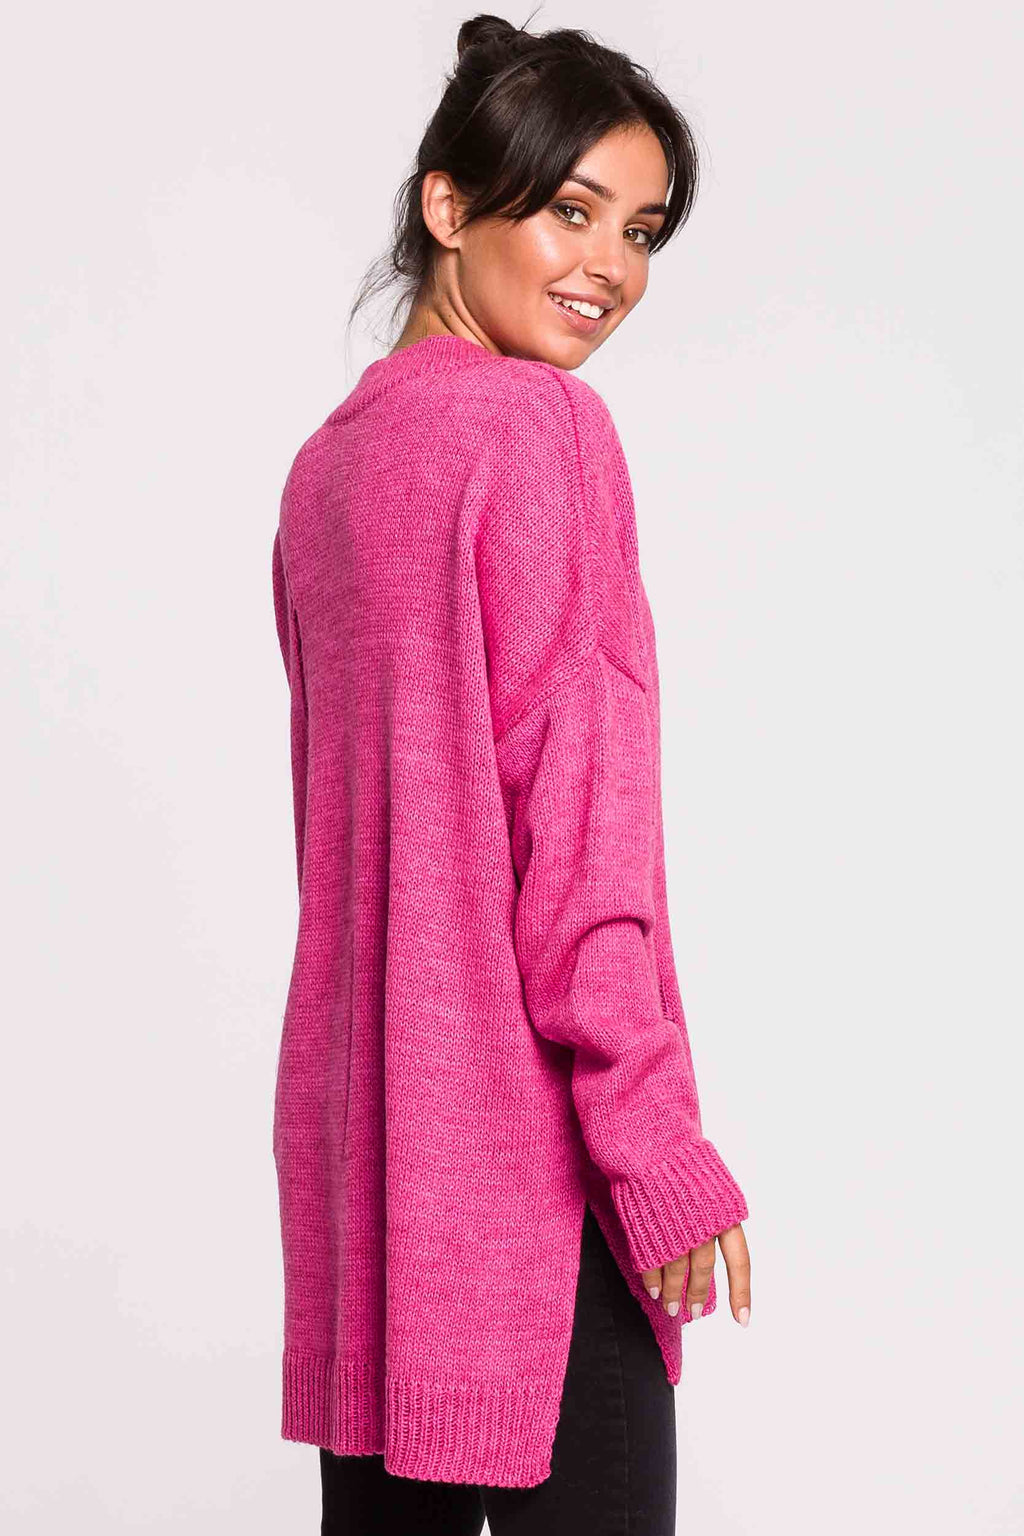 Fuchsia Distressed Oversize V Sweater - So Chic Boutique